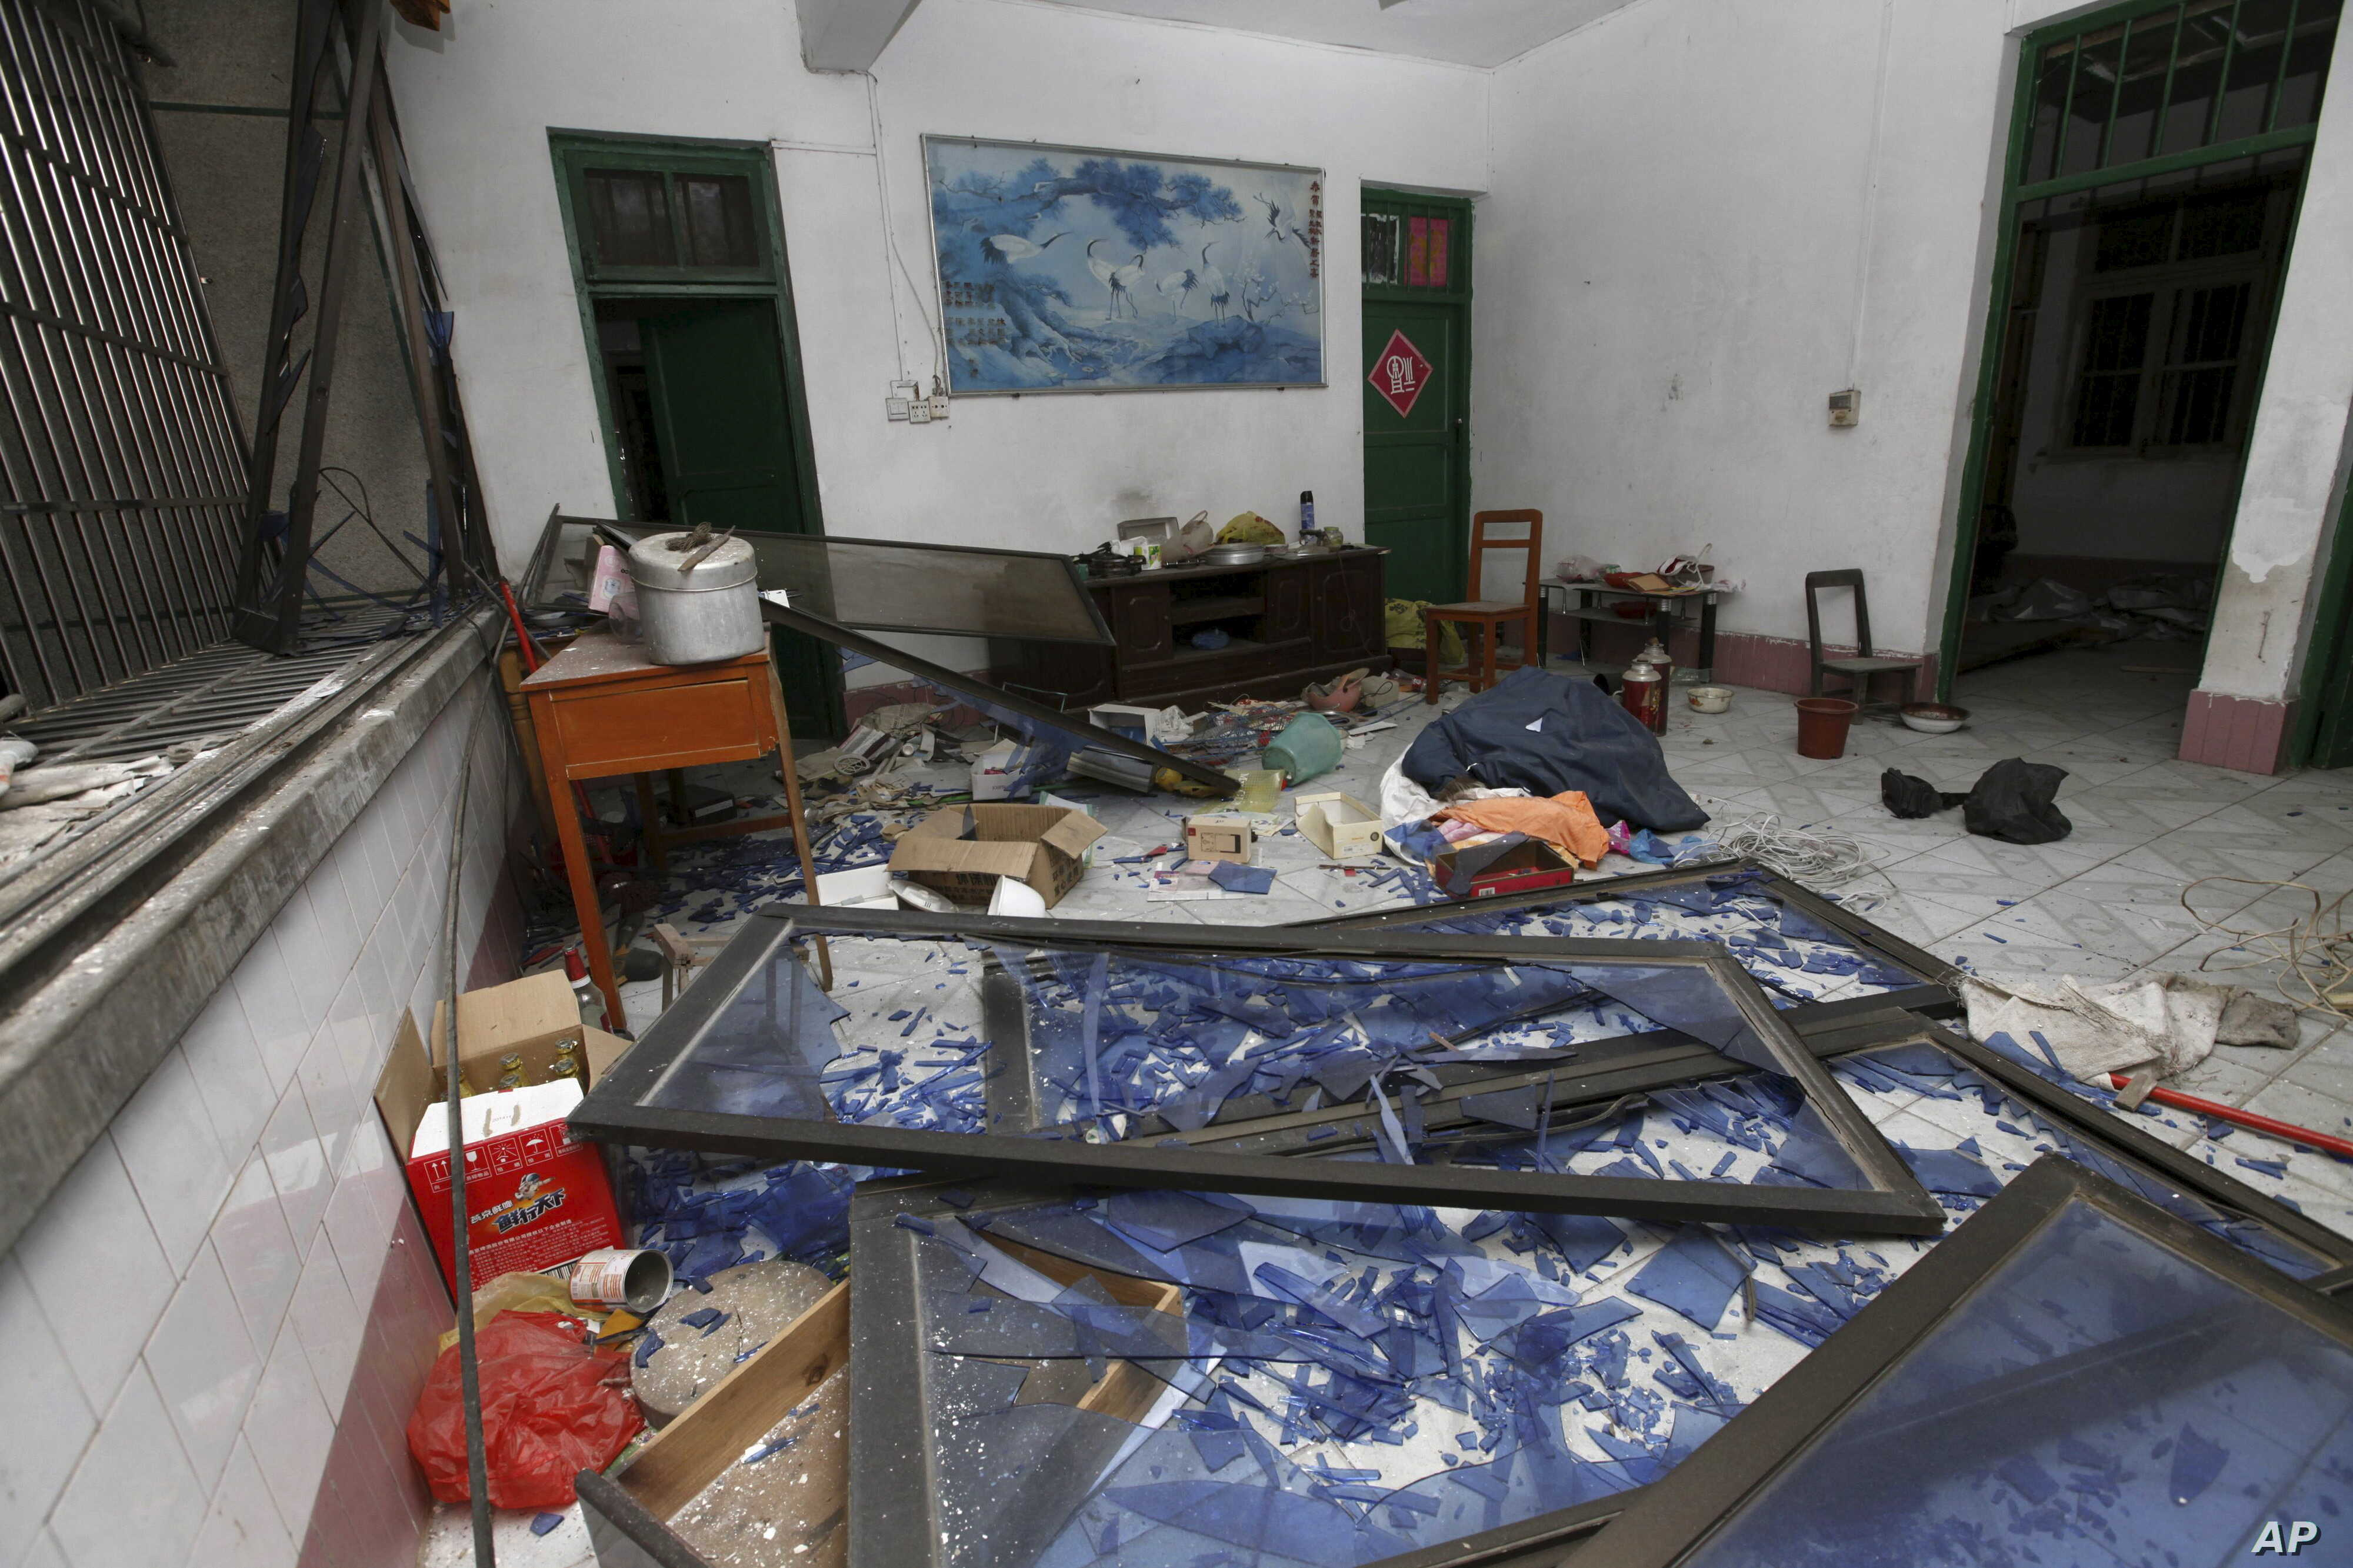 A damaged room in a residential building is seen after several locations were targeted with parcel bombs in the southwestern city of Liuzhou, Guangxi province, Sept. 30, 2015.